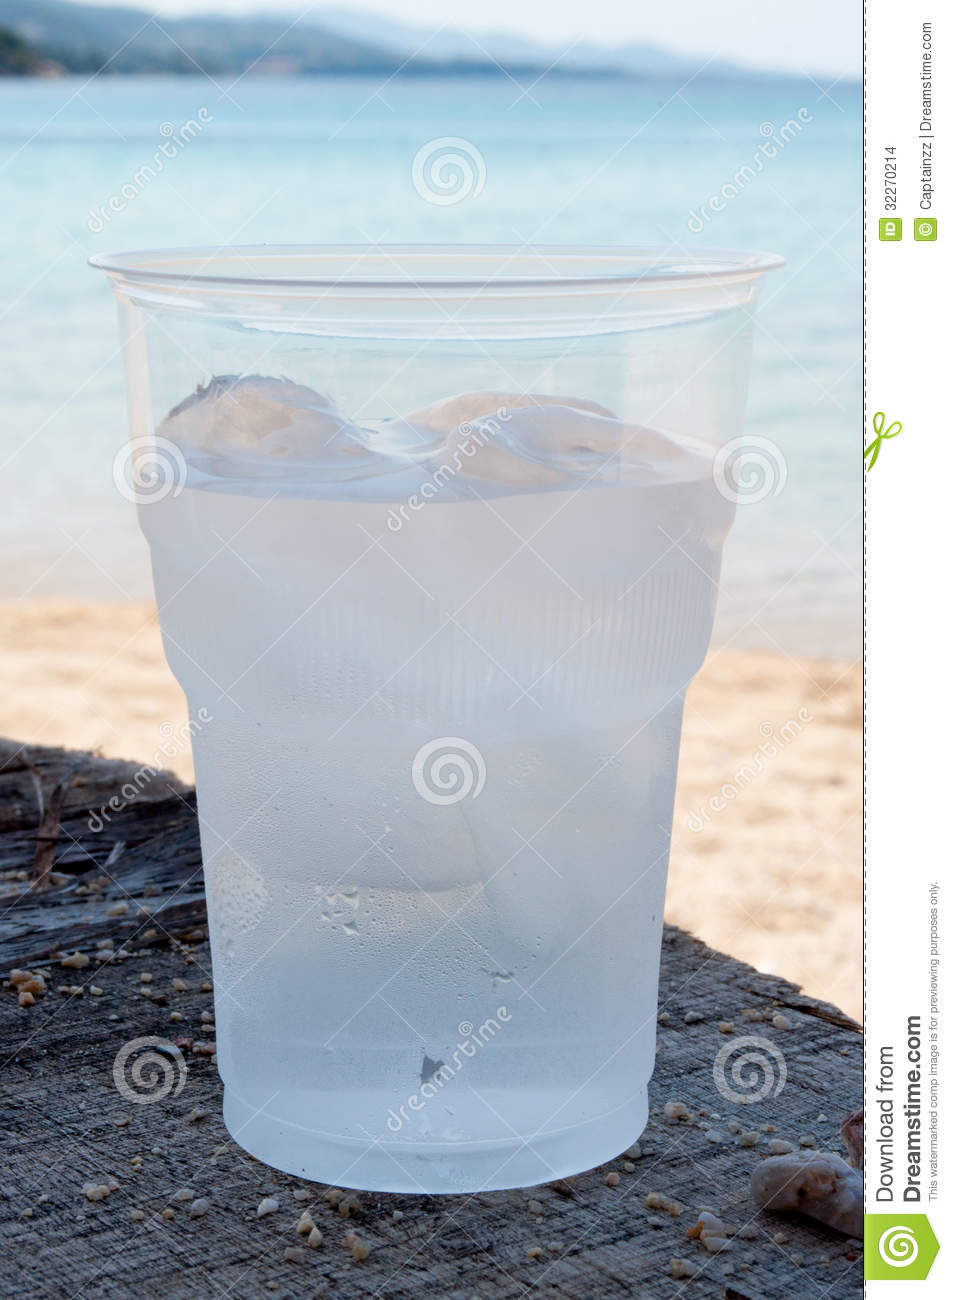 Water With Ice Stock Images - Image: 32270214